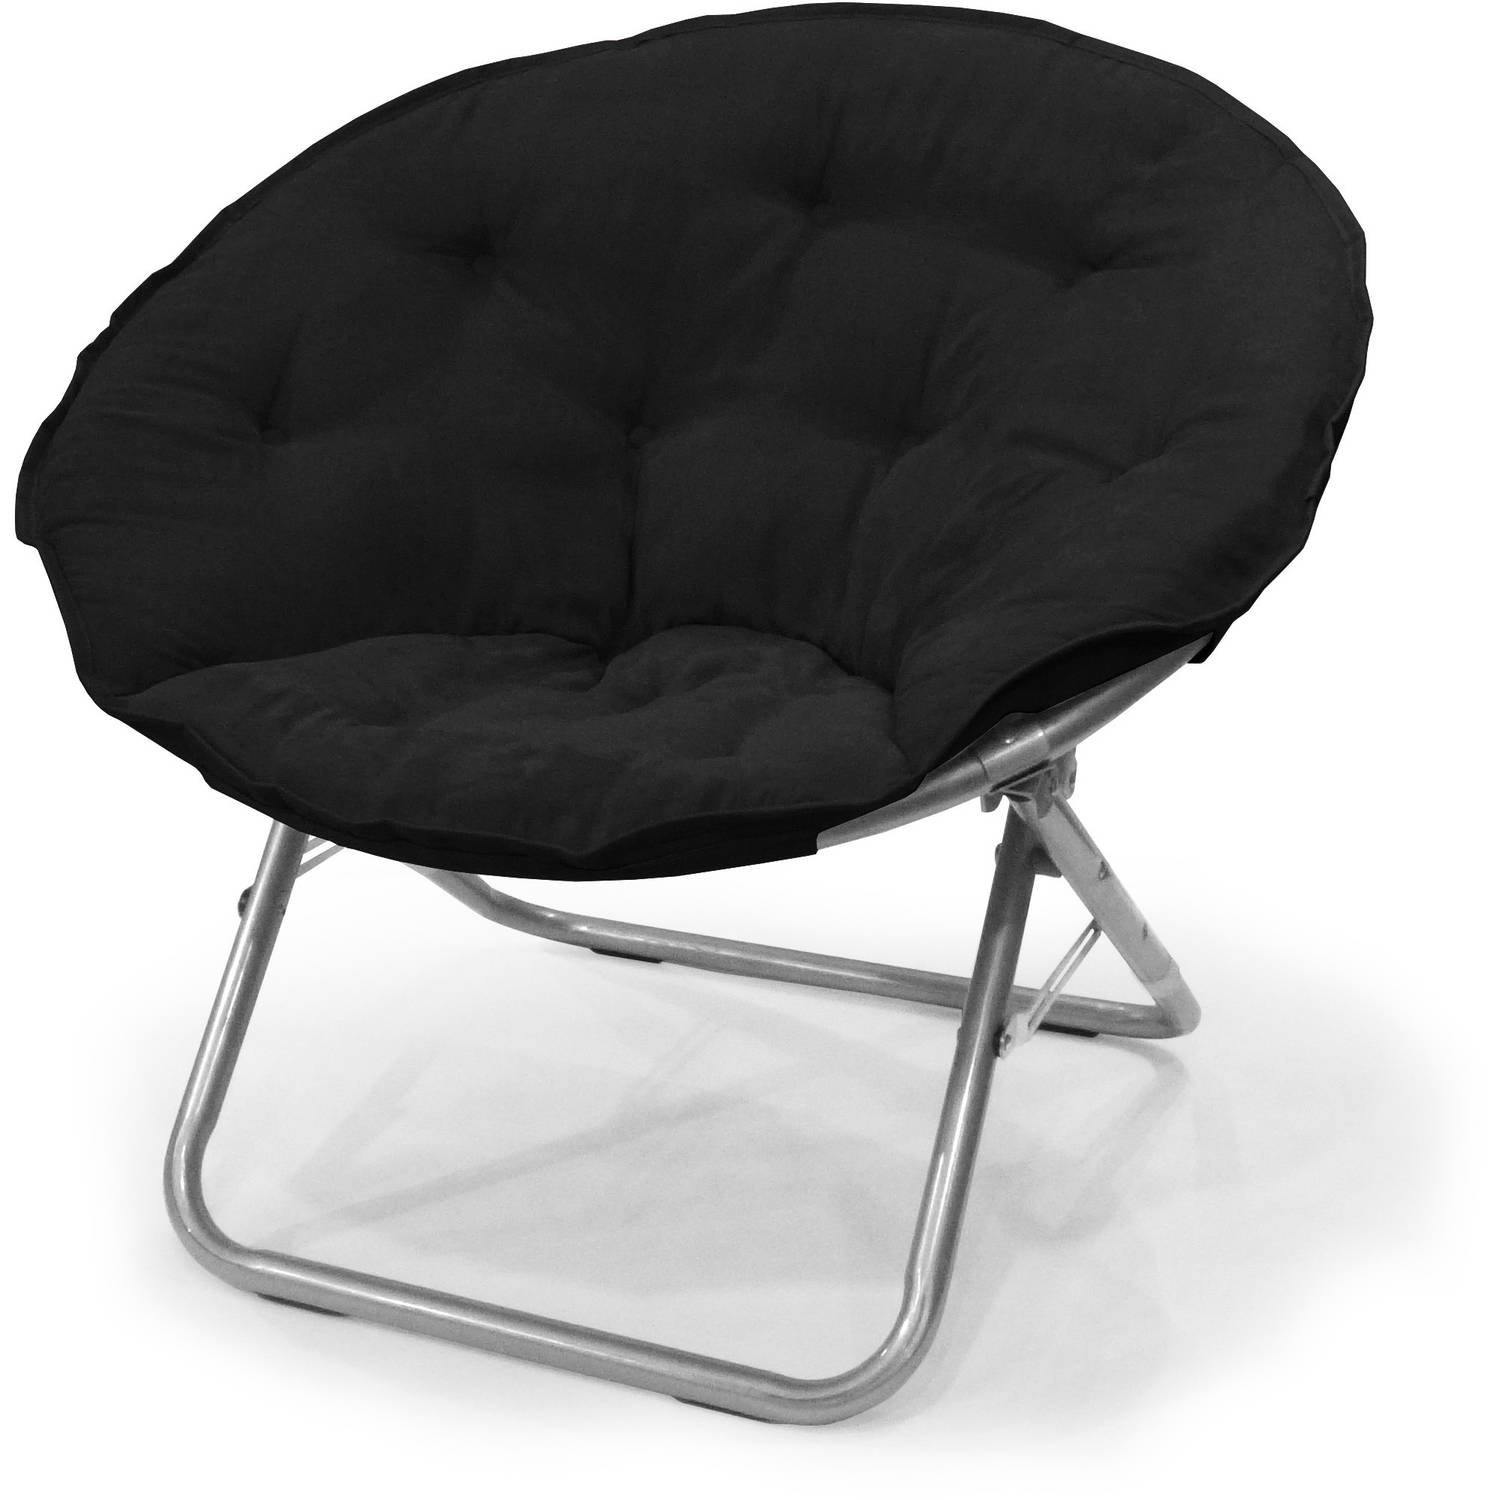 Amazing Mainstays Large Microsuede Saucer Chair, Multiple Colors